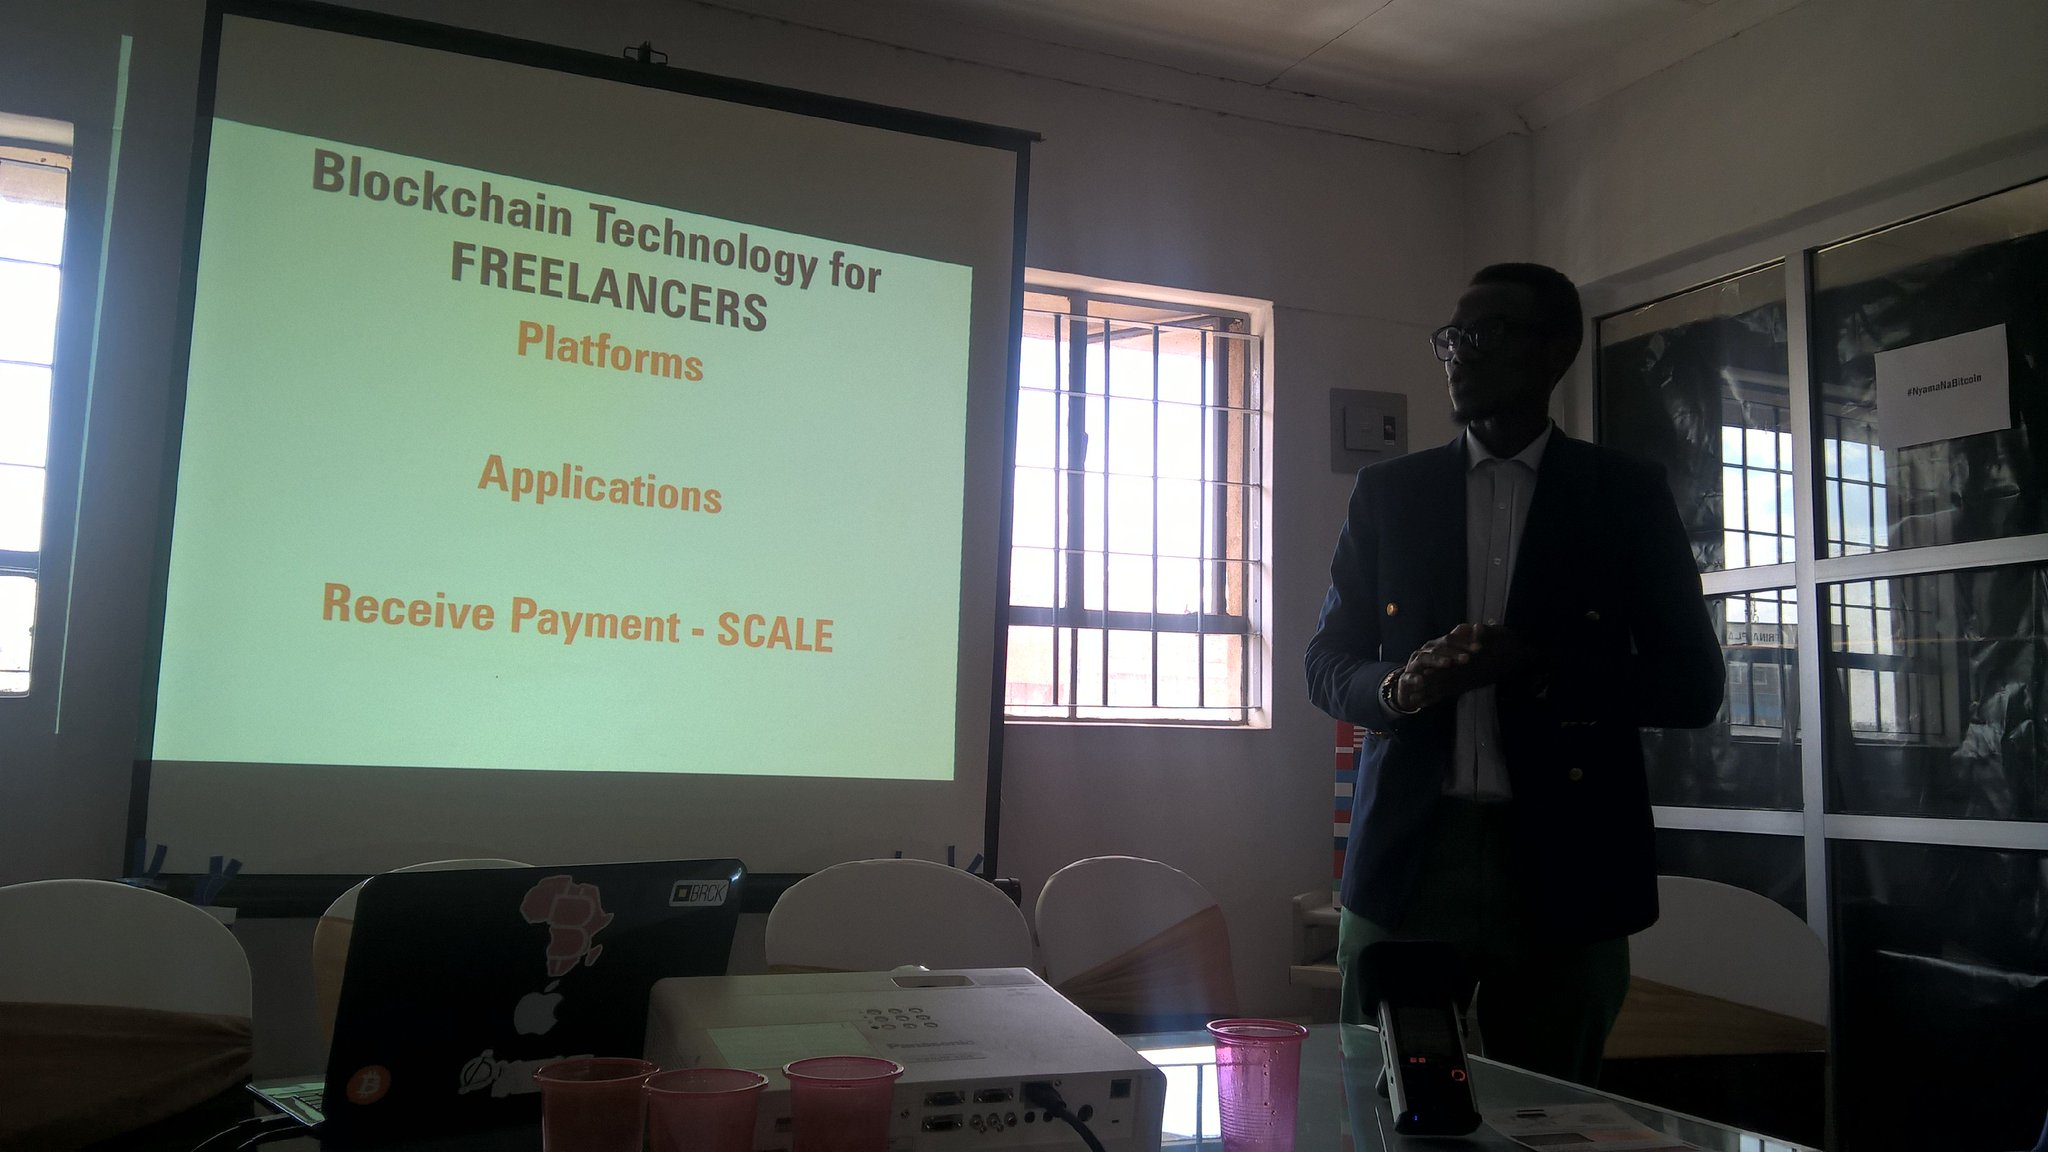 Bitcoin can be used for payment for freelancers #NyamaNaBitcoin #Bitcoin @BitHubAfrica https://t.co/T3XLvhRUel